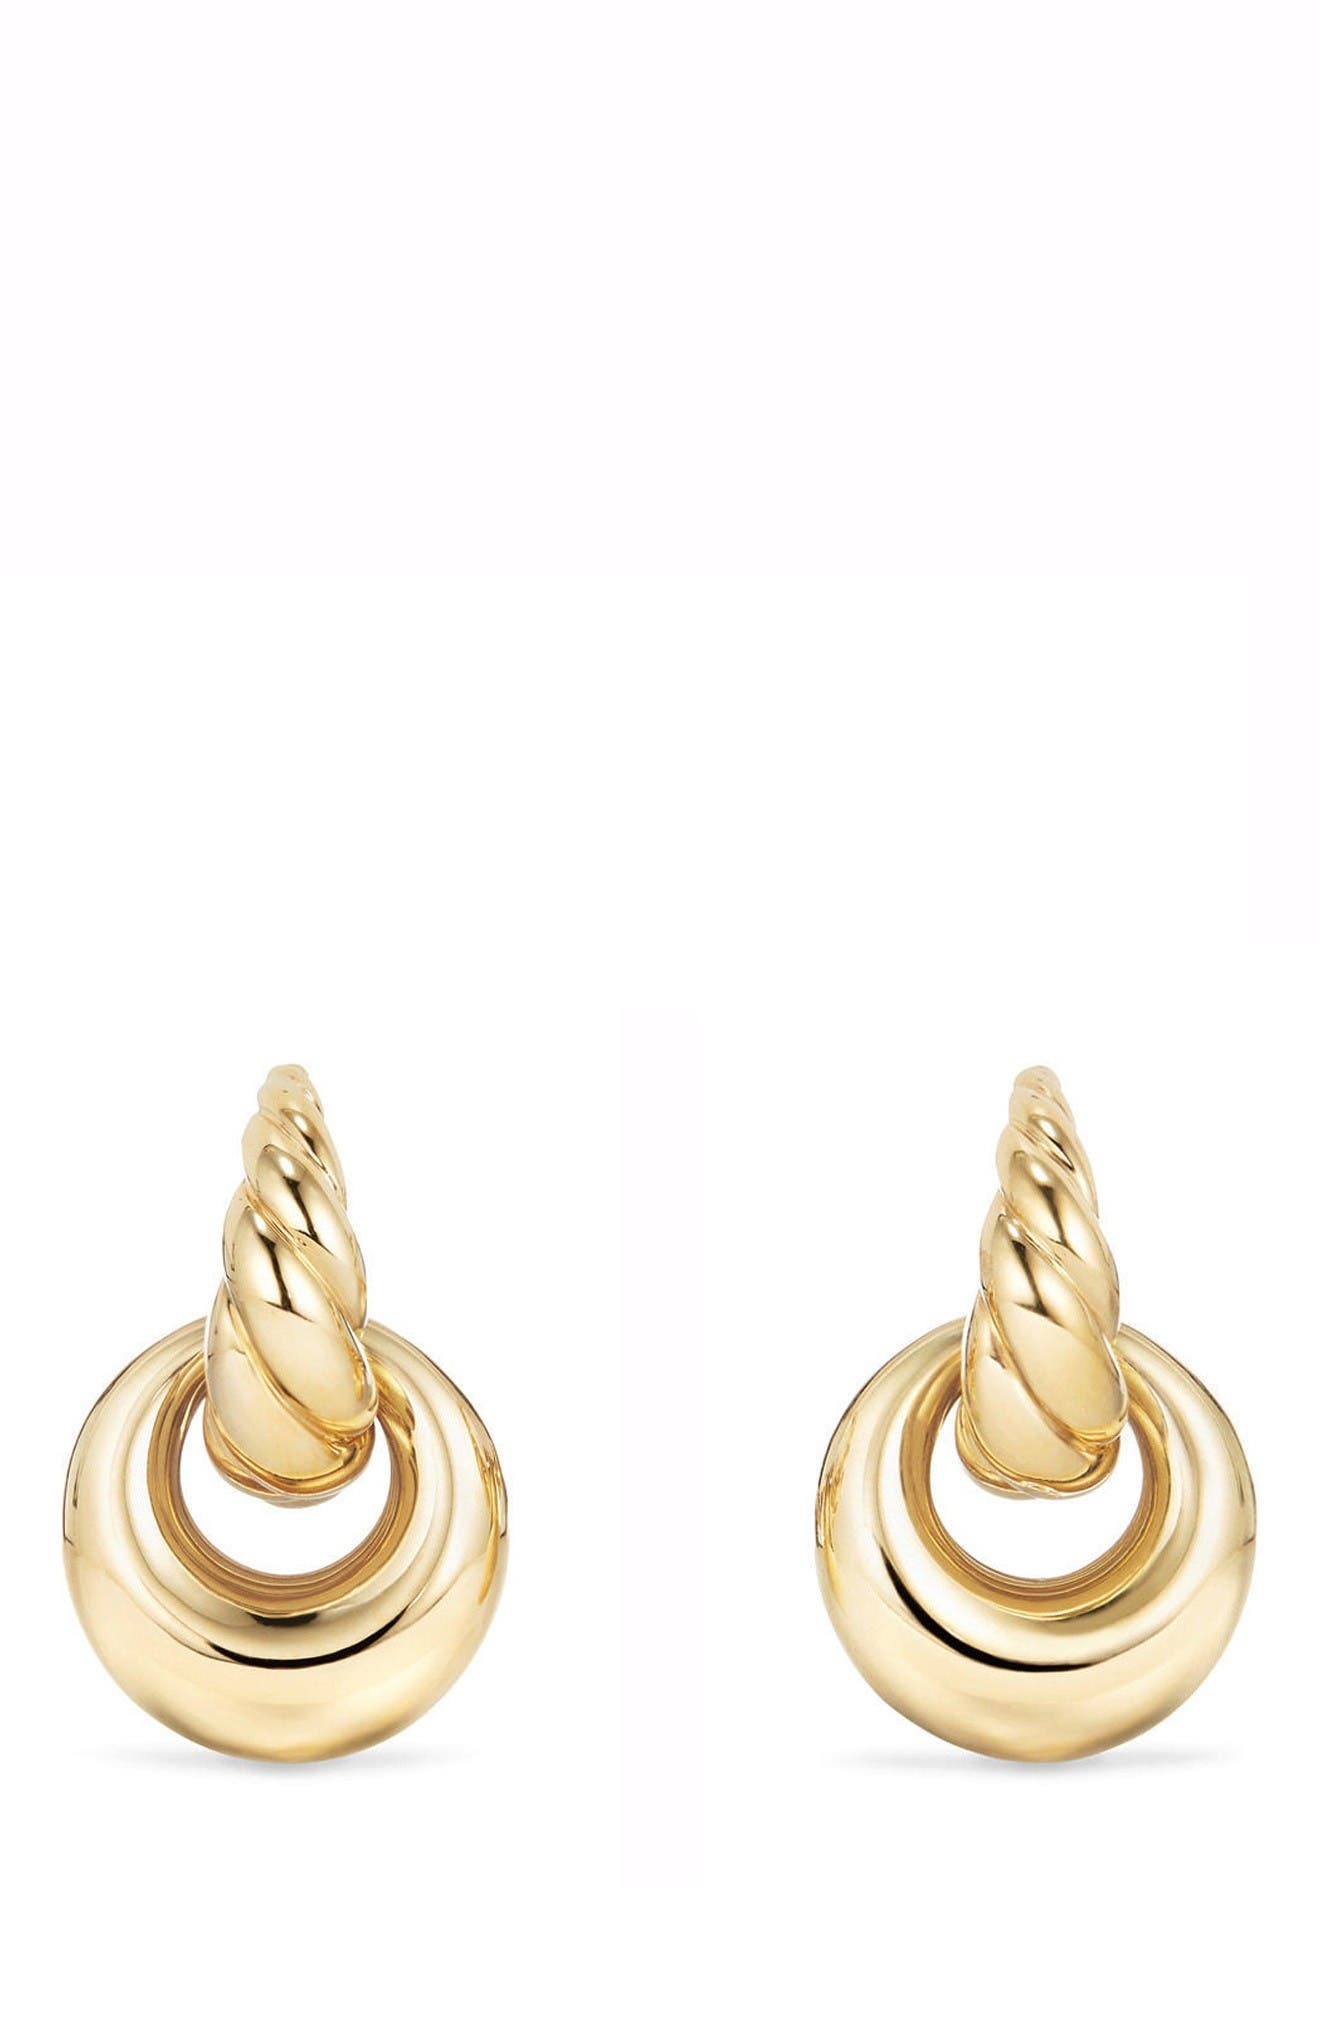 DAVID YURMAN Pure Form<sup>®</sup> Drop Earrings in 18K Yellow Gold